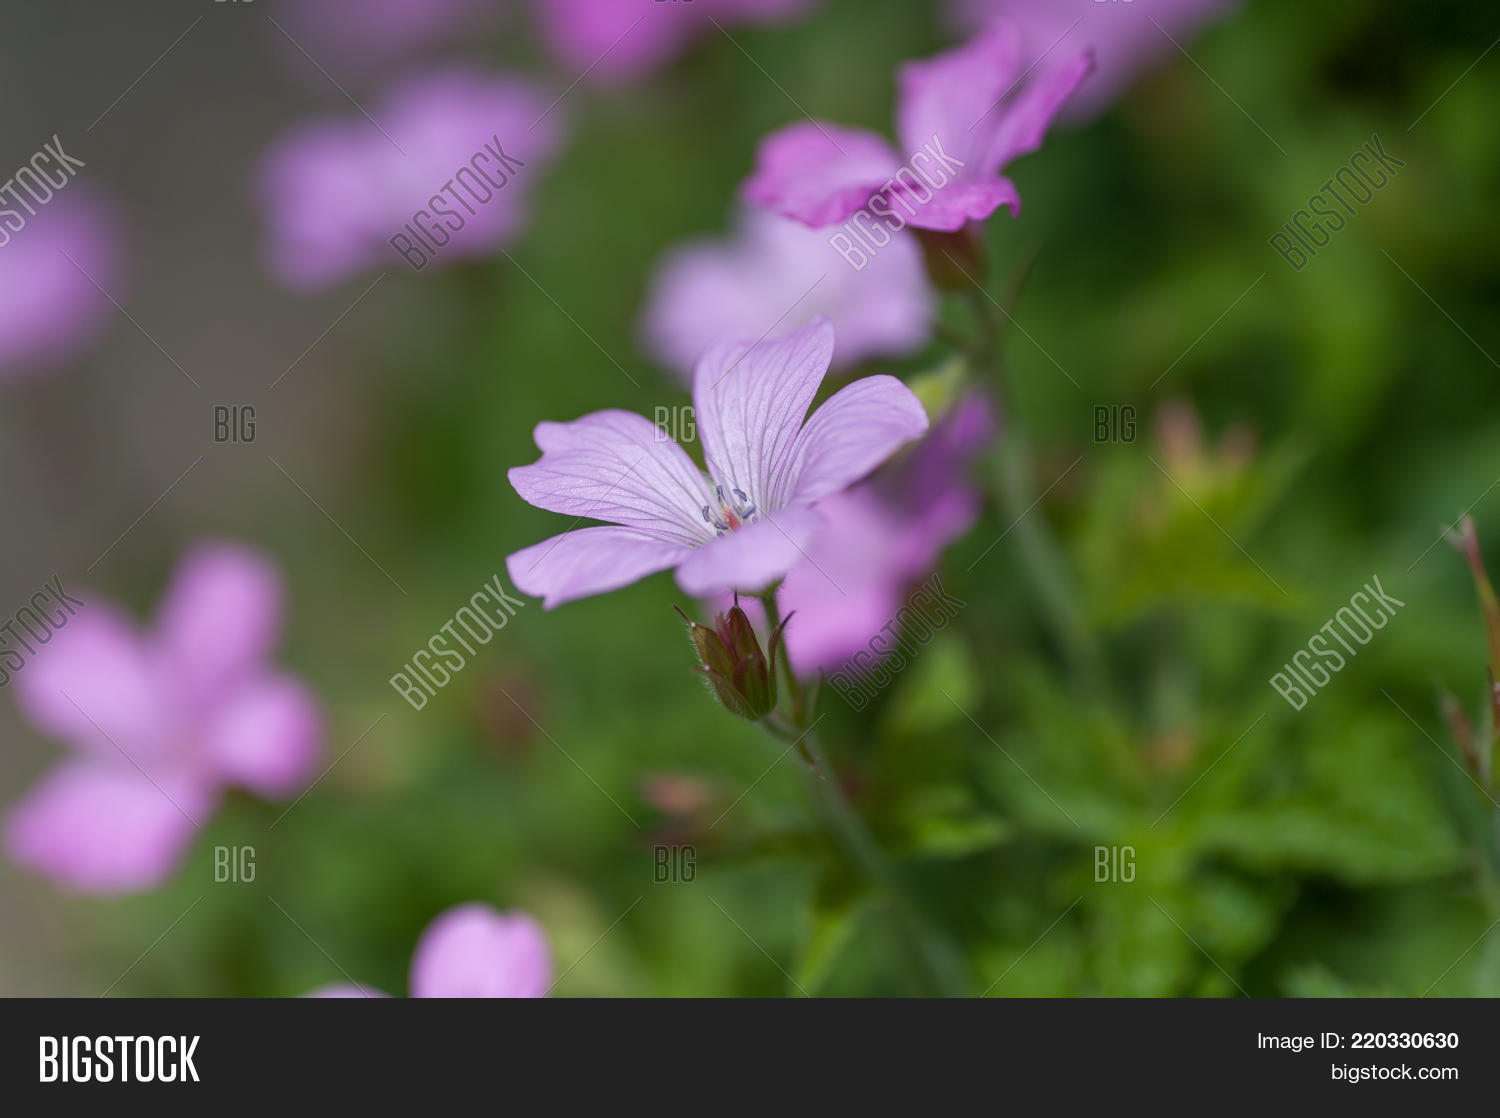 Purple Flowers Wild Image Photo Free Trial Bigstock